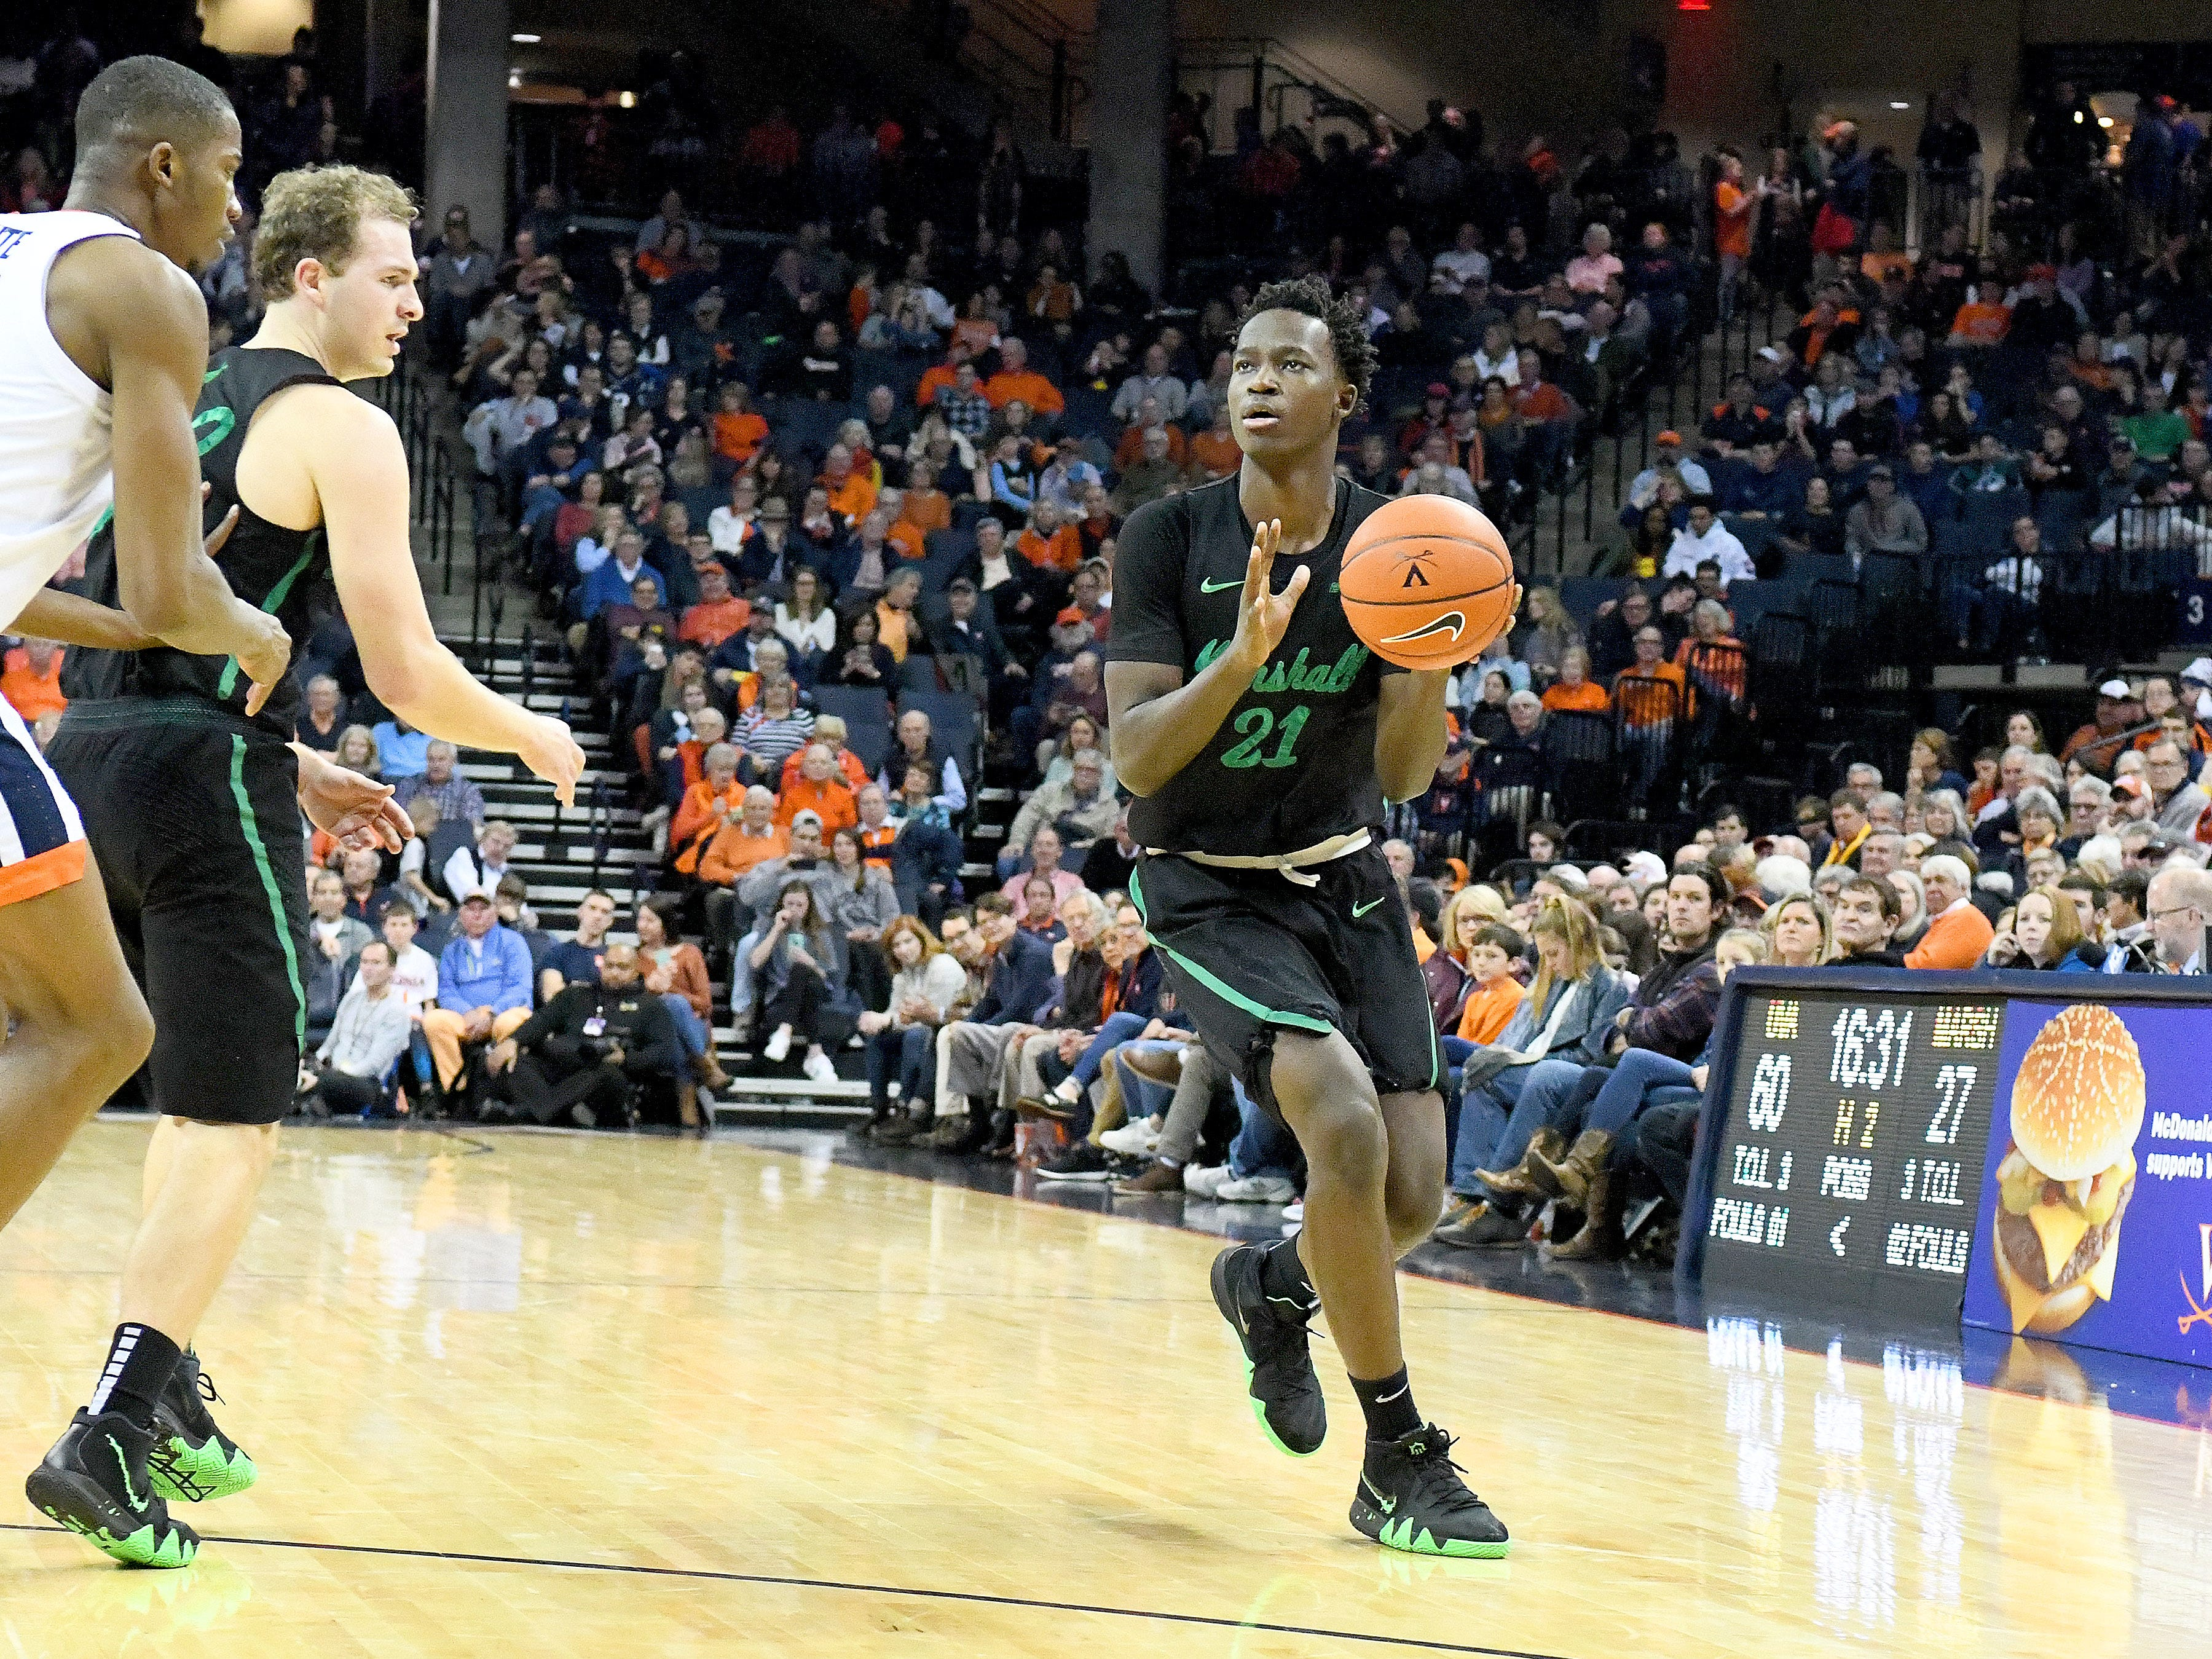 Marshall's Darius George, former R.E. Lee star, looks to shoot during their game against University of Virginia, played at the John Paul Jones Arena on Dec. 31, 2016.